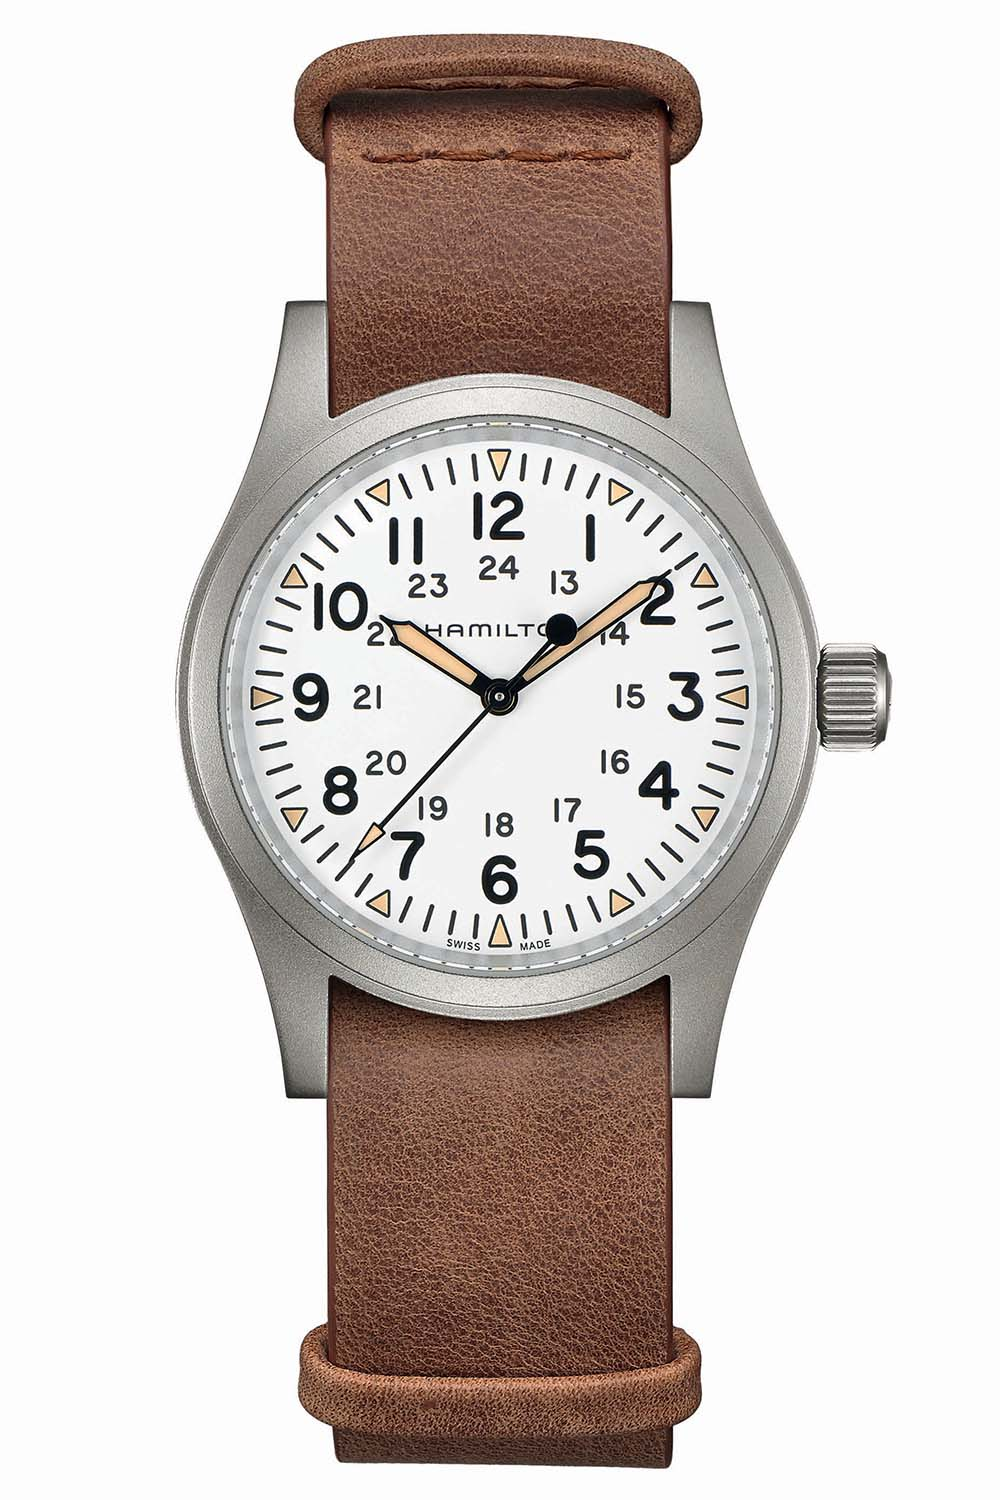 Hamilton Khaki Field Mechanical 2019 - 7